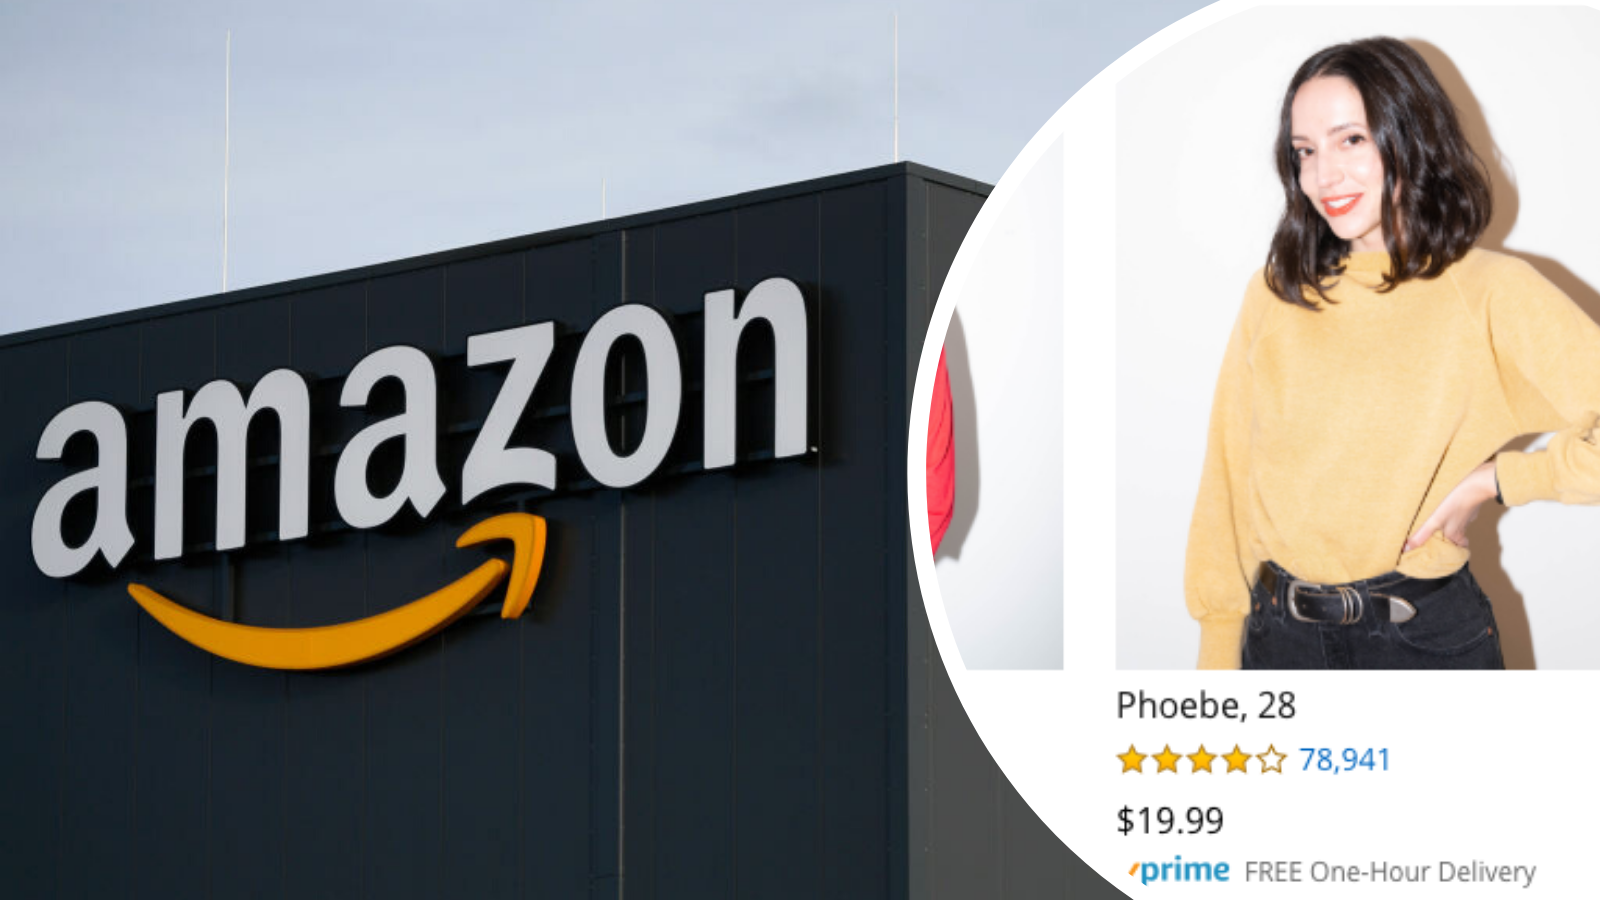 Amazon has started selling people for $30